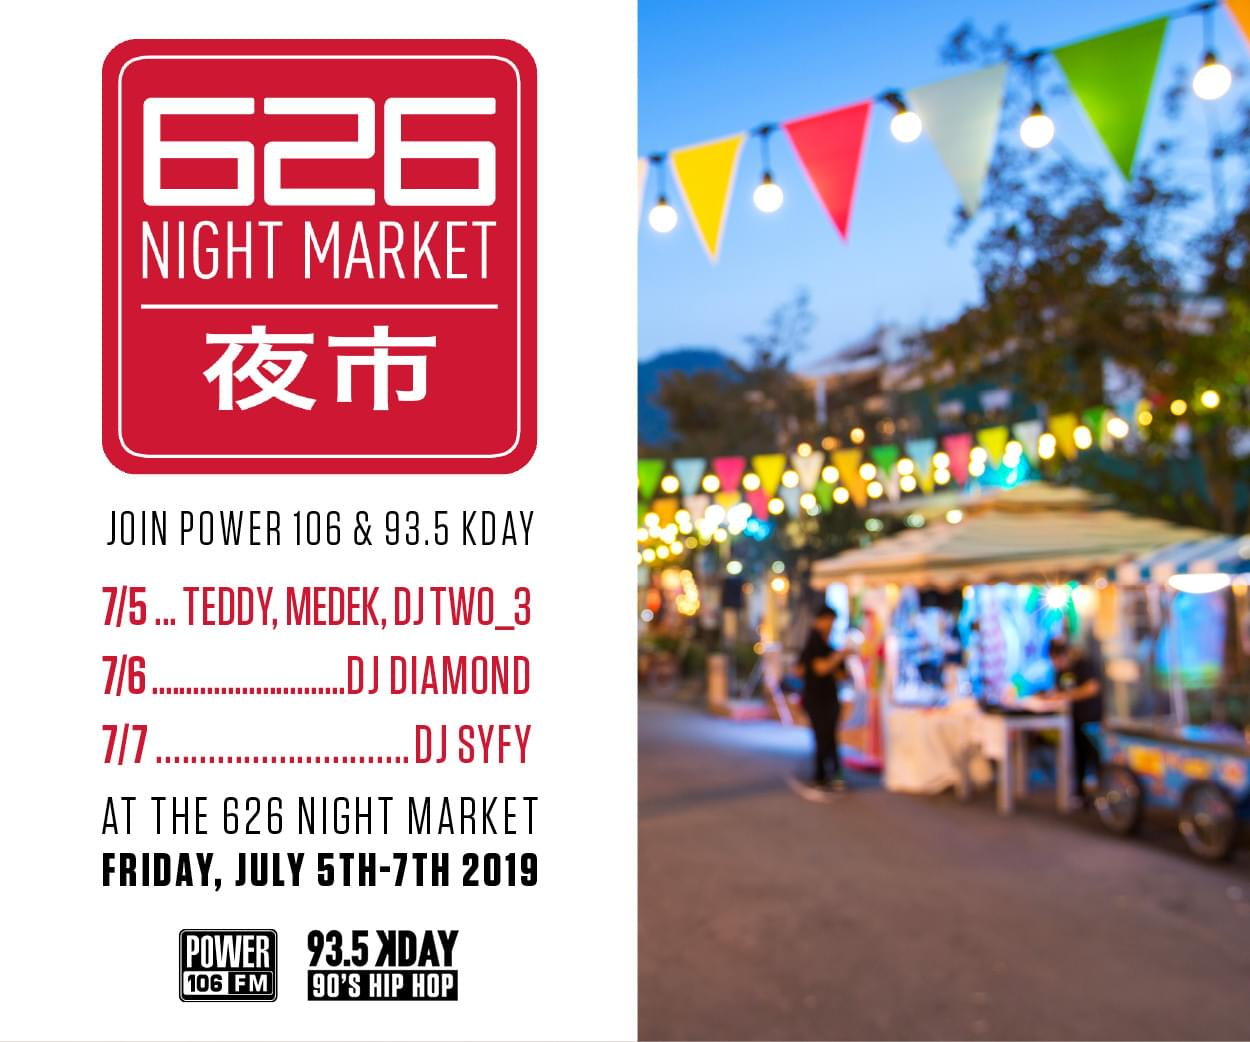 626 Night Market w/ Power 106 & 93.5 KDAY